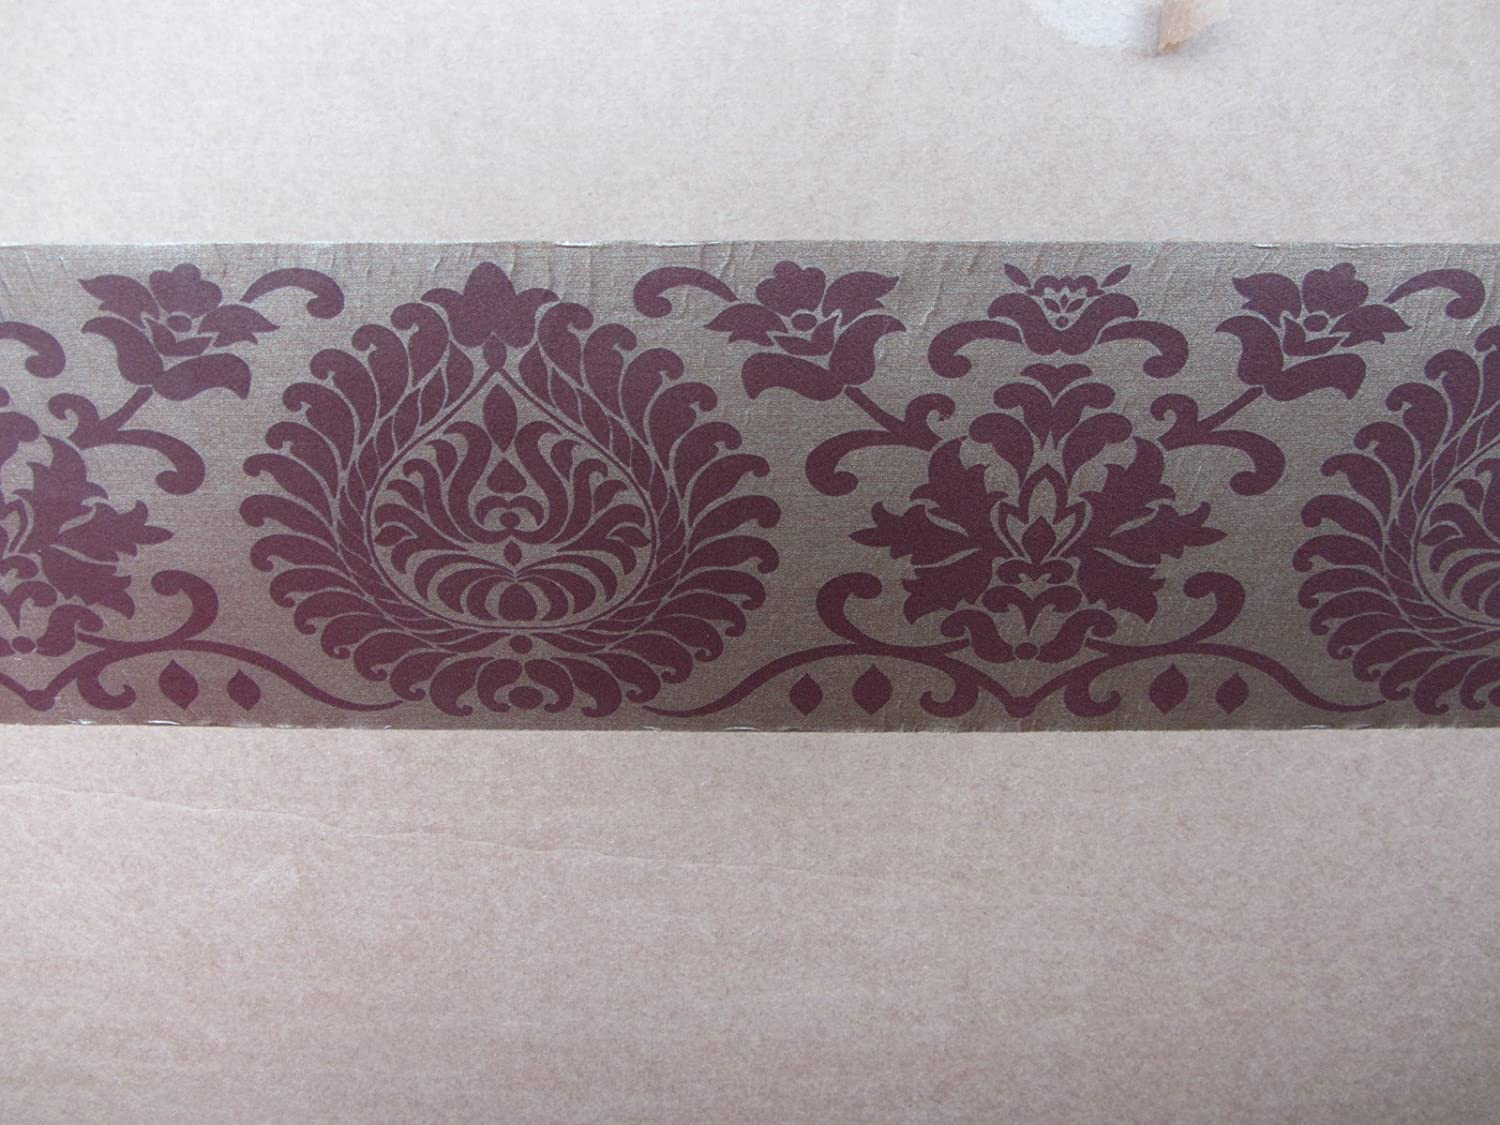 Damask Mocha Wallpaper Border Self Adhesive Bedroom Hallway Lounge 5x12 5 30510 Free Shipping Amazon Co Uk Kitchen Home